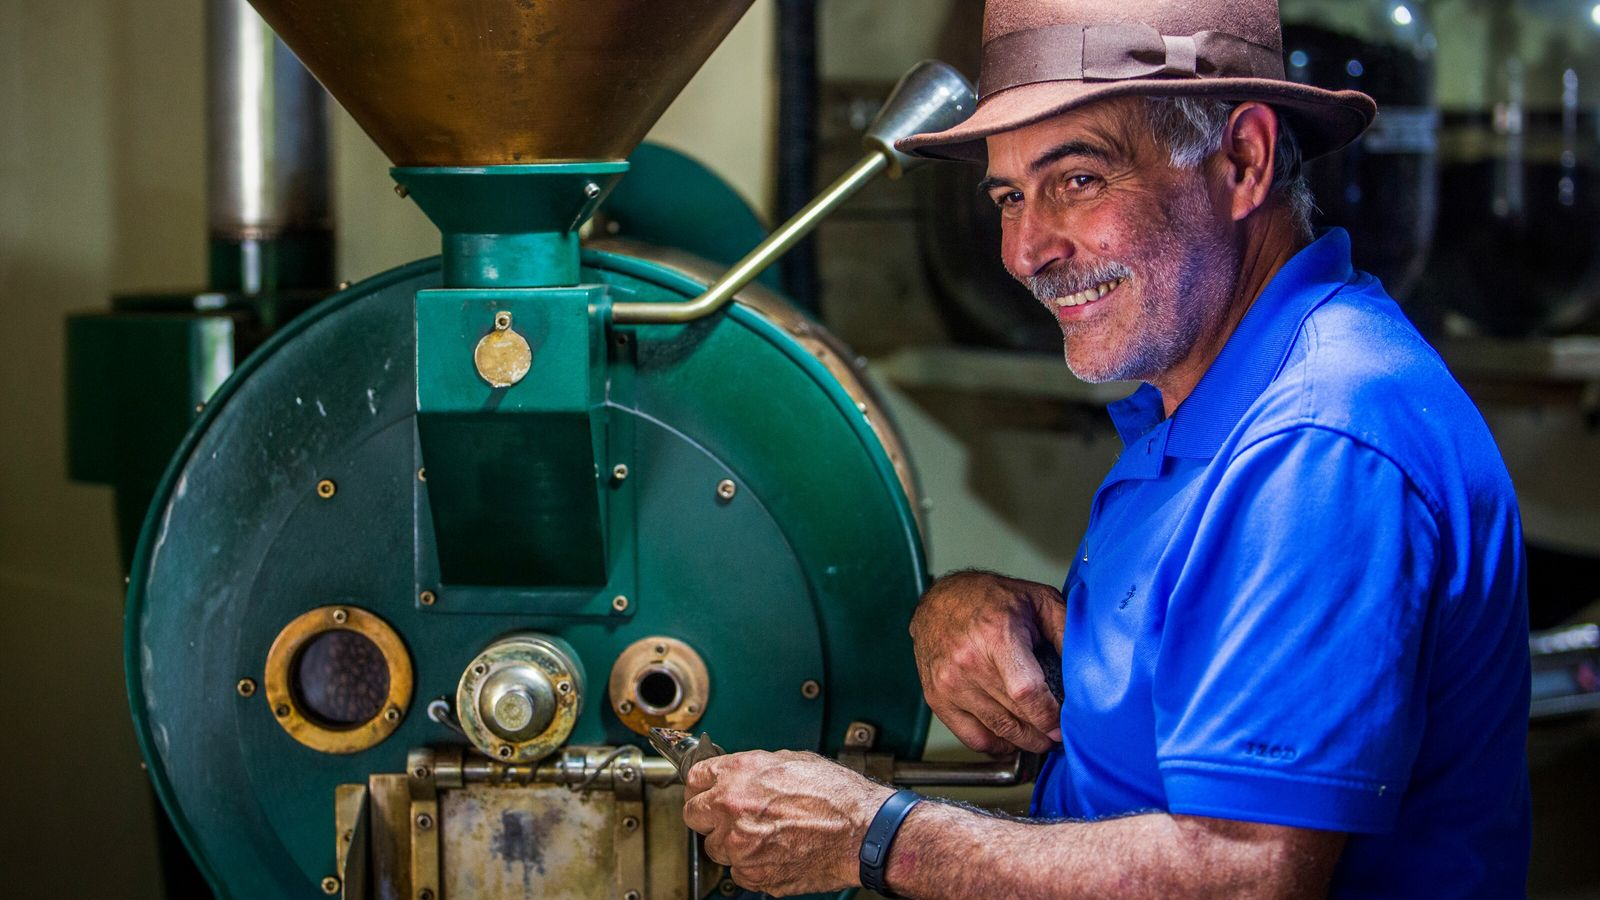 65-year-old Roberto has been working at the family farm, Hacienda San Pedro, for the past 45 years. ...